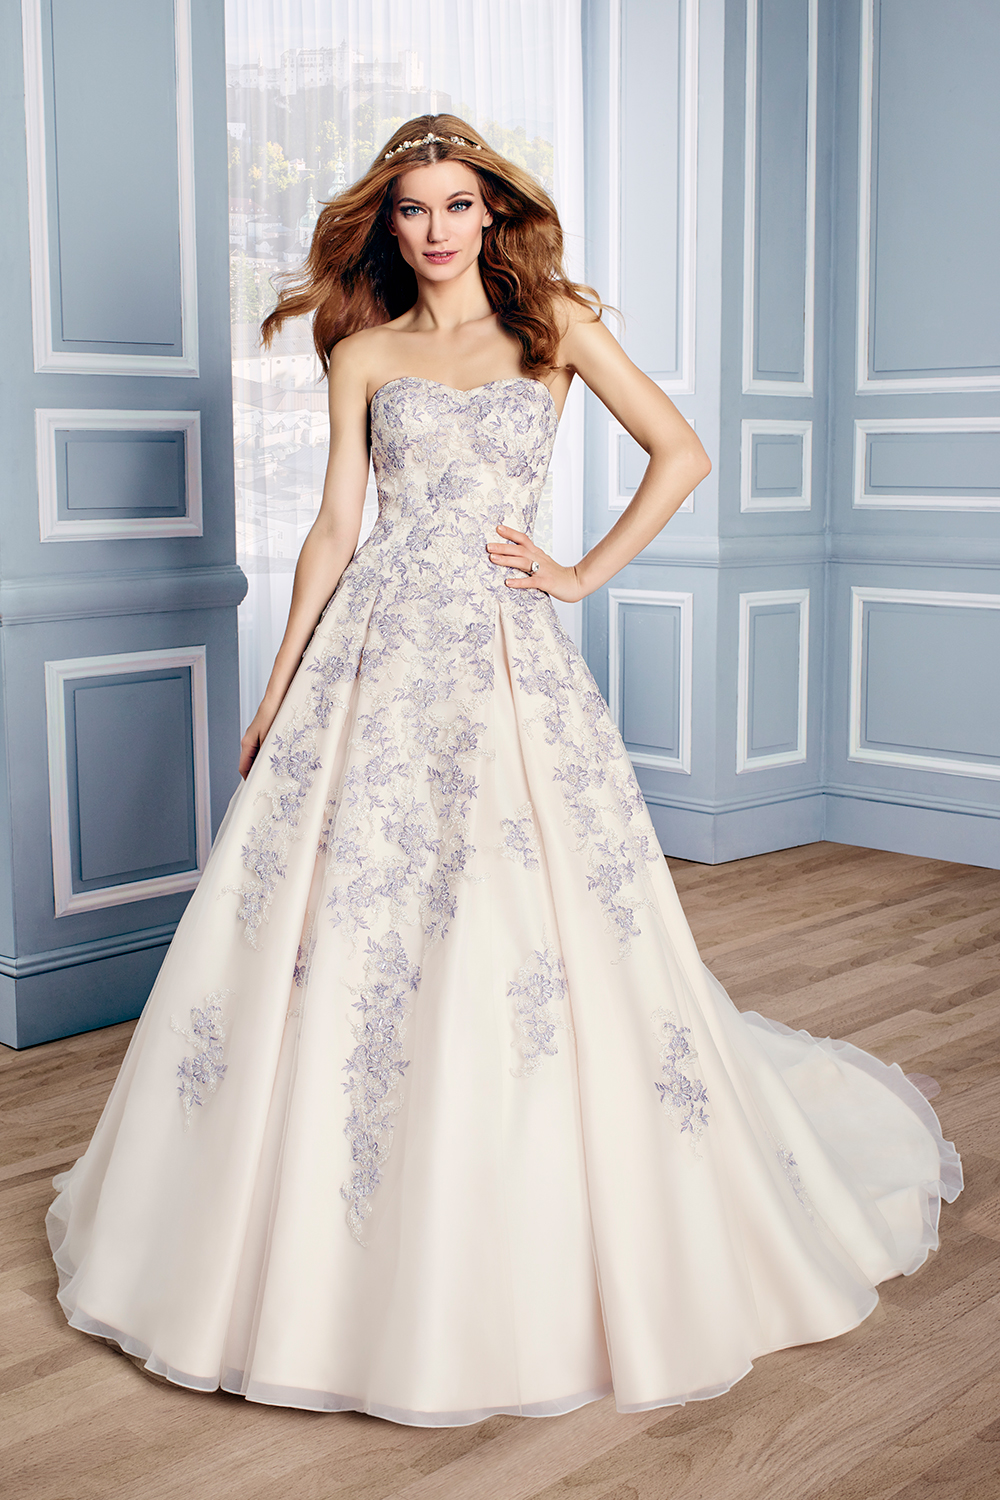 Moonlight Couture Fall 2016 Collection. www.theweddingnotebook.com